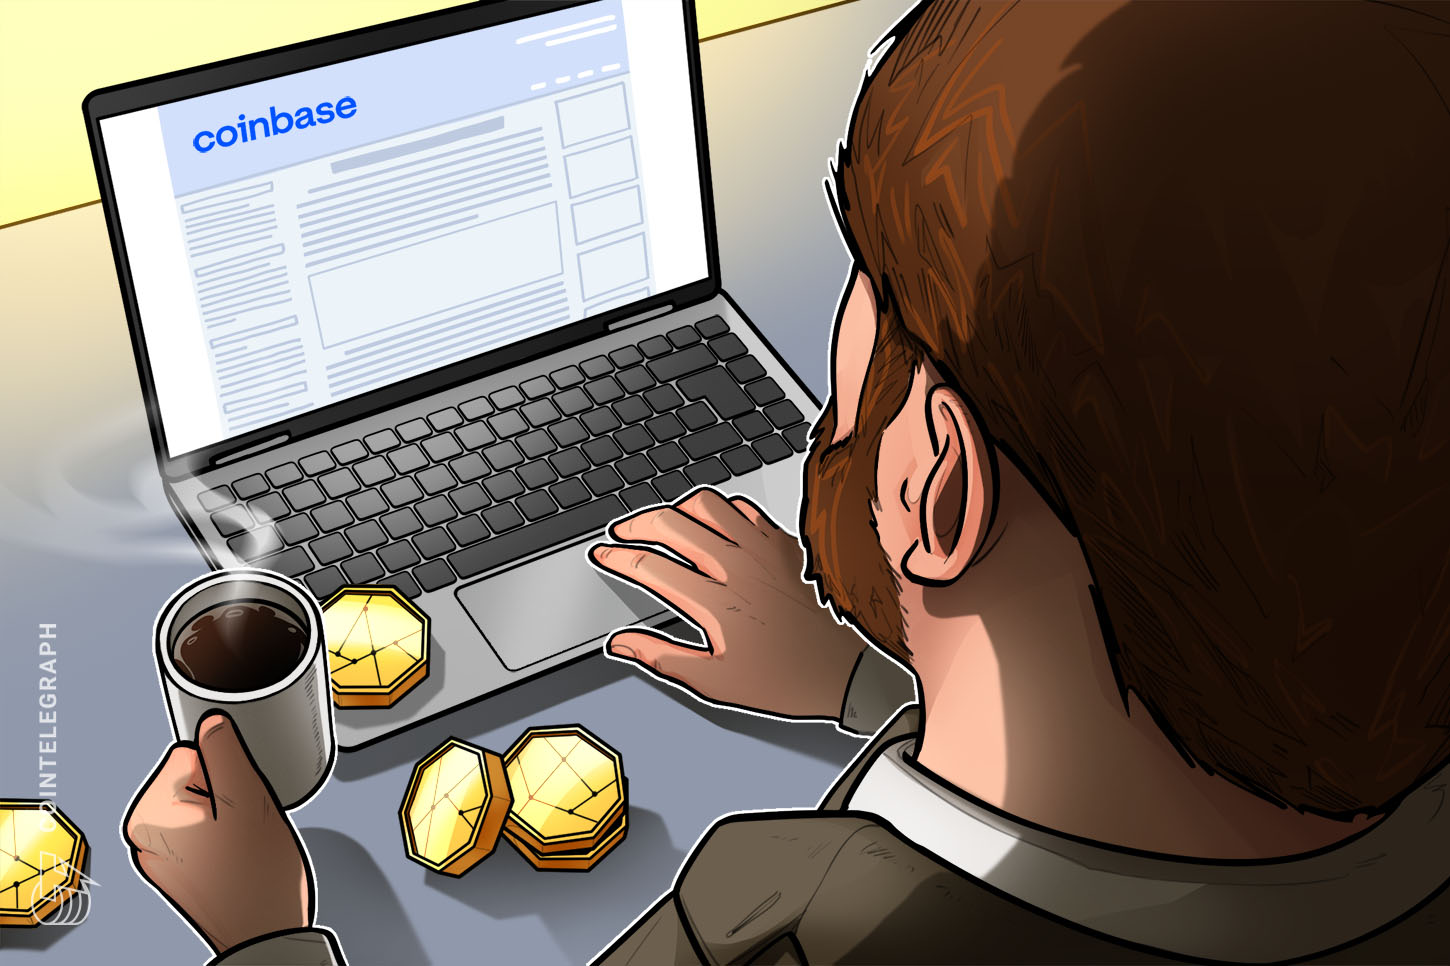 Almost 1.1 million people have already signed up for Coinbase NFT waitlist